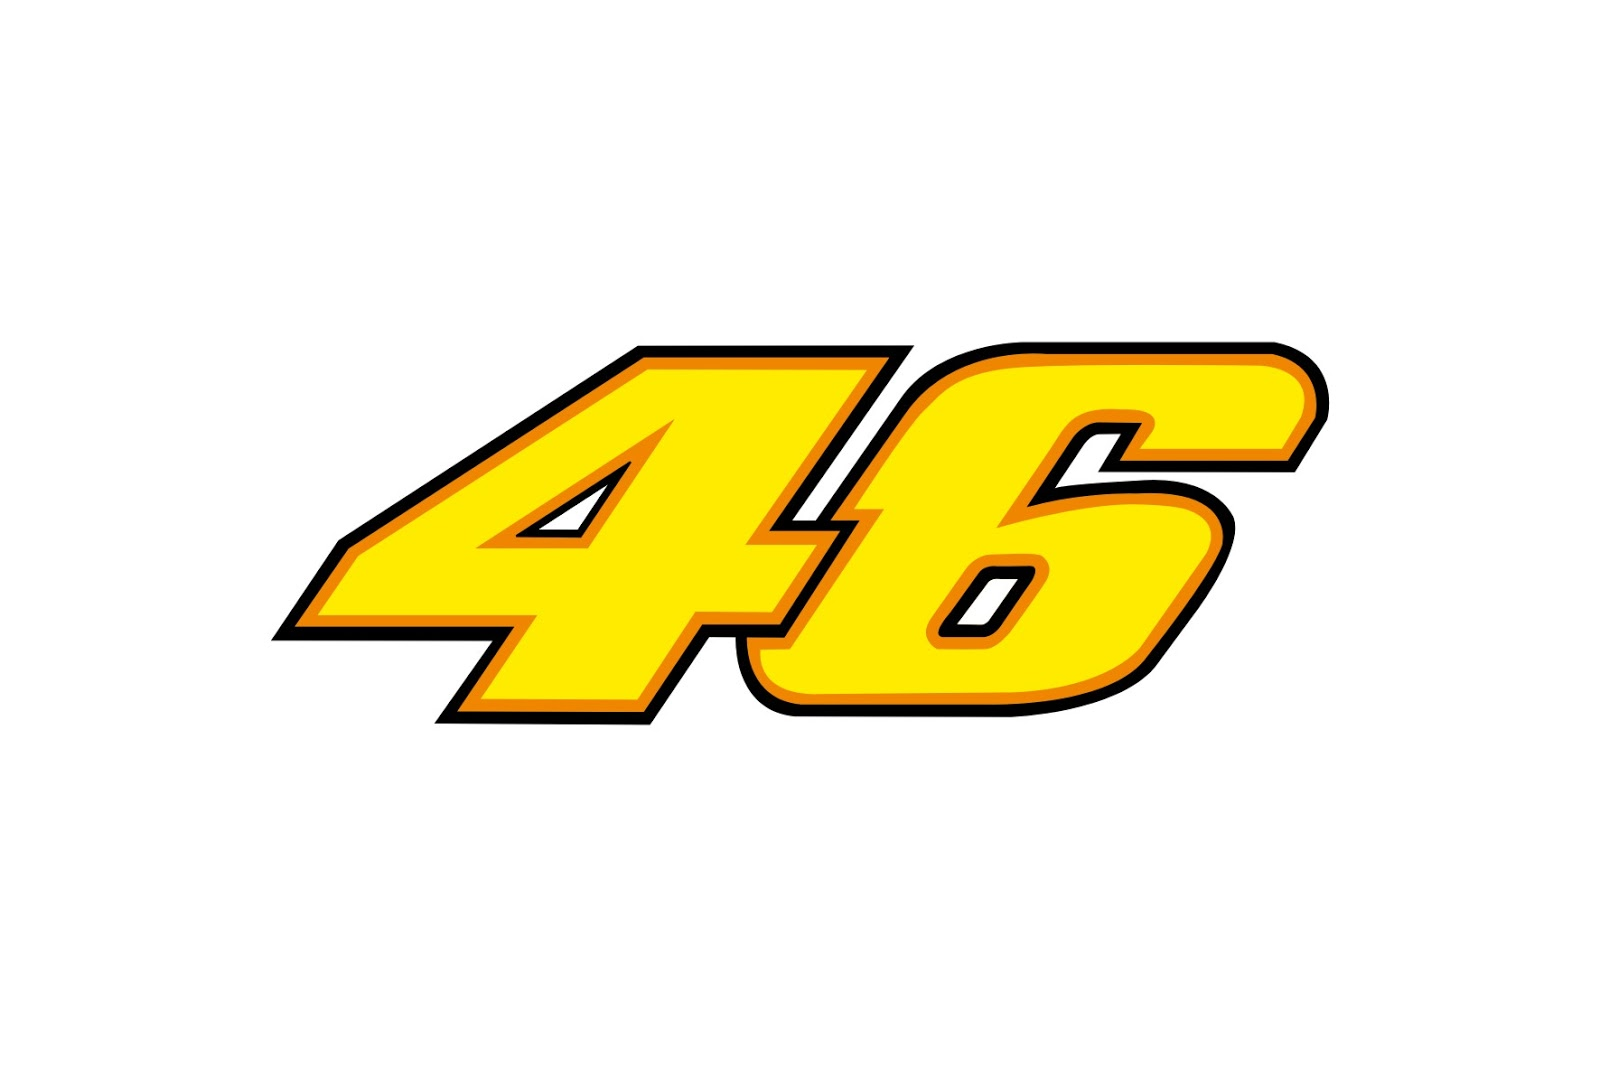 Valentino rossi Fonts Free Download -